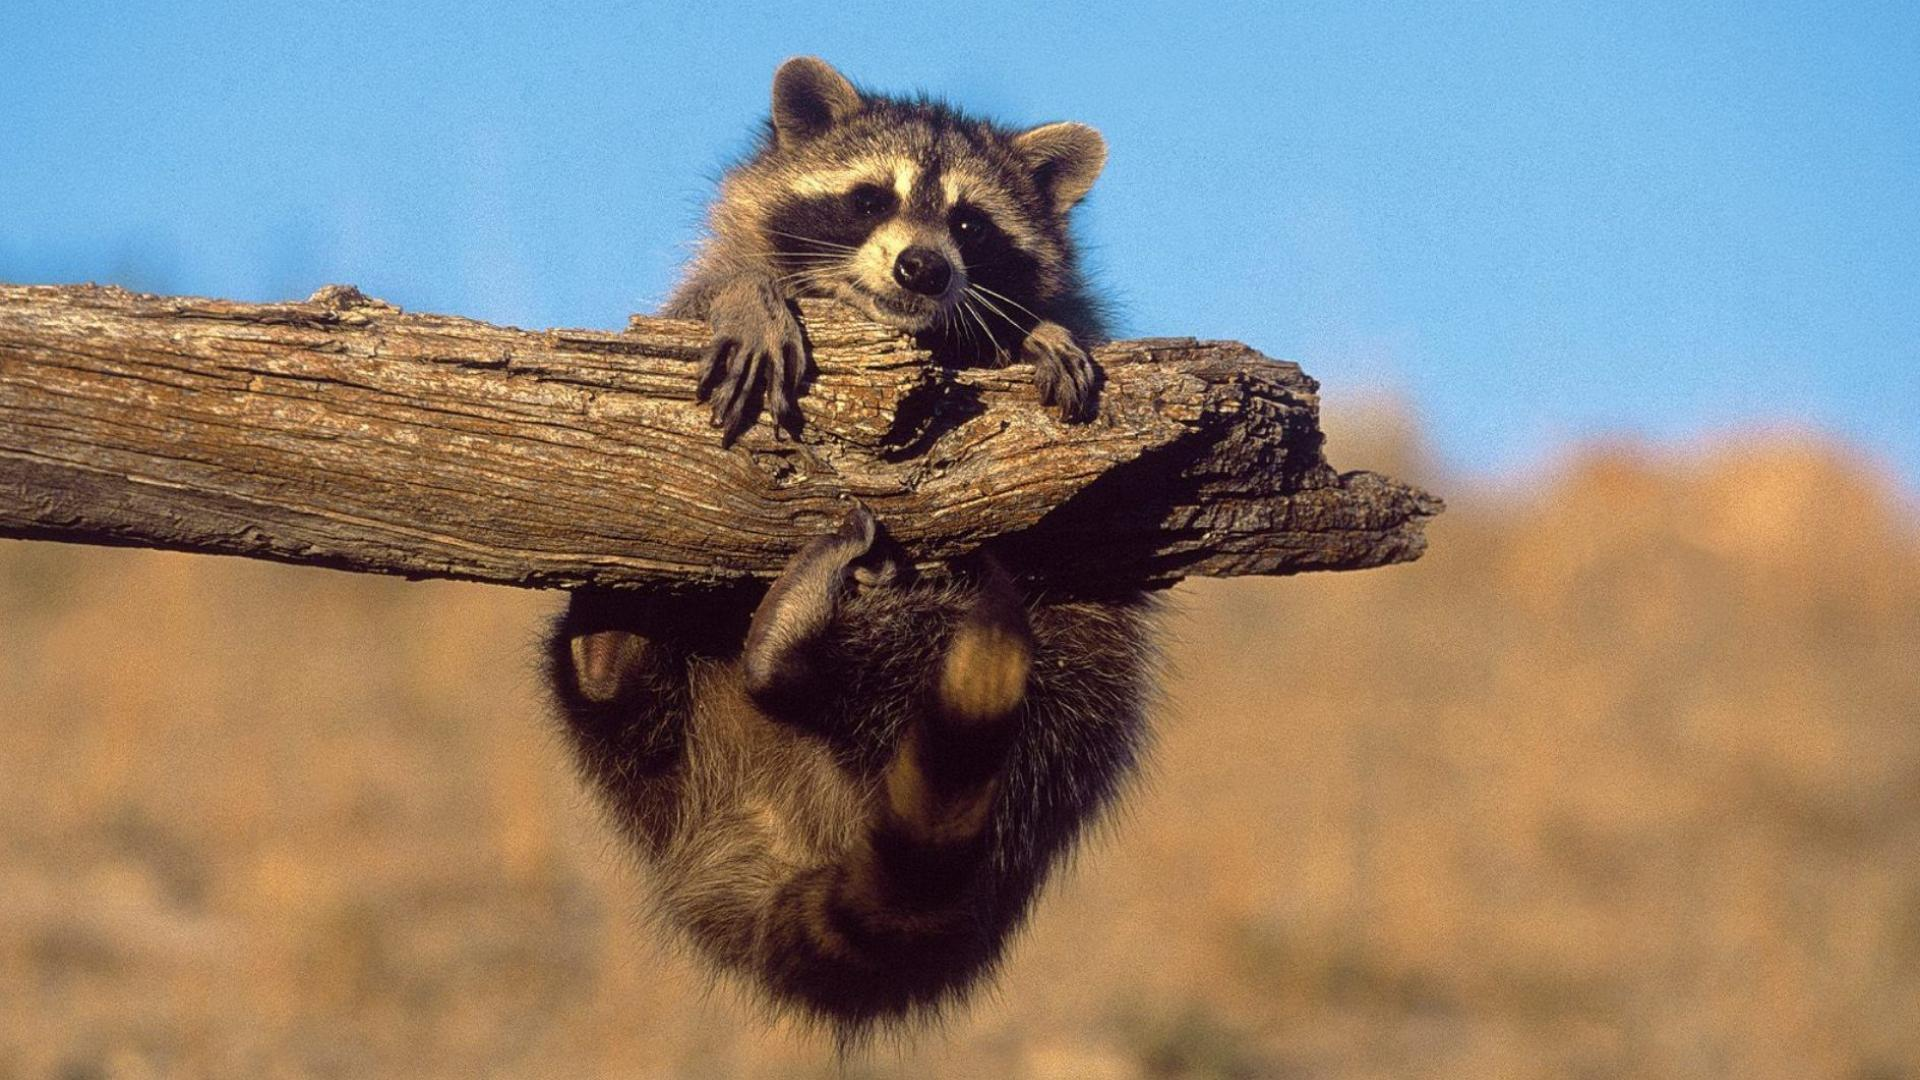 31968 download wallpaper Animals, Raccoons screensavers and pictures for free